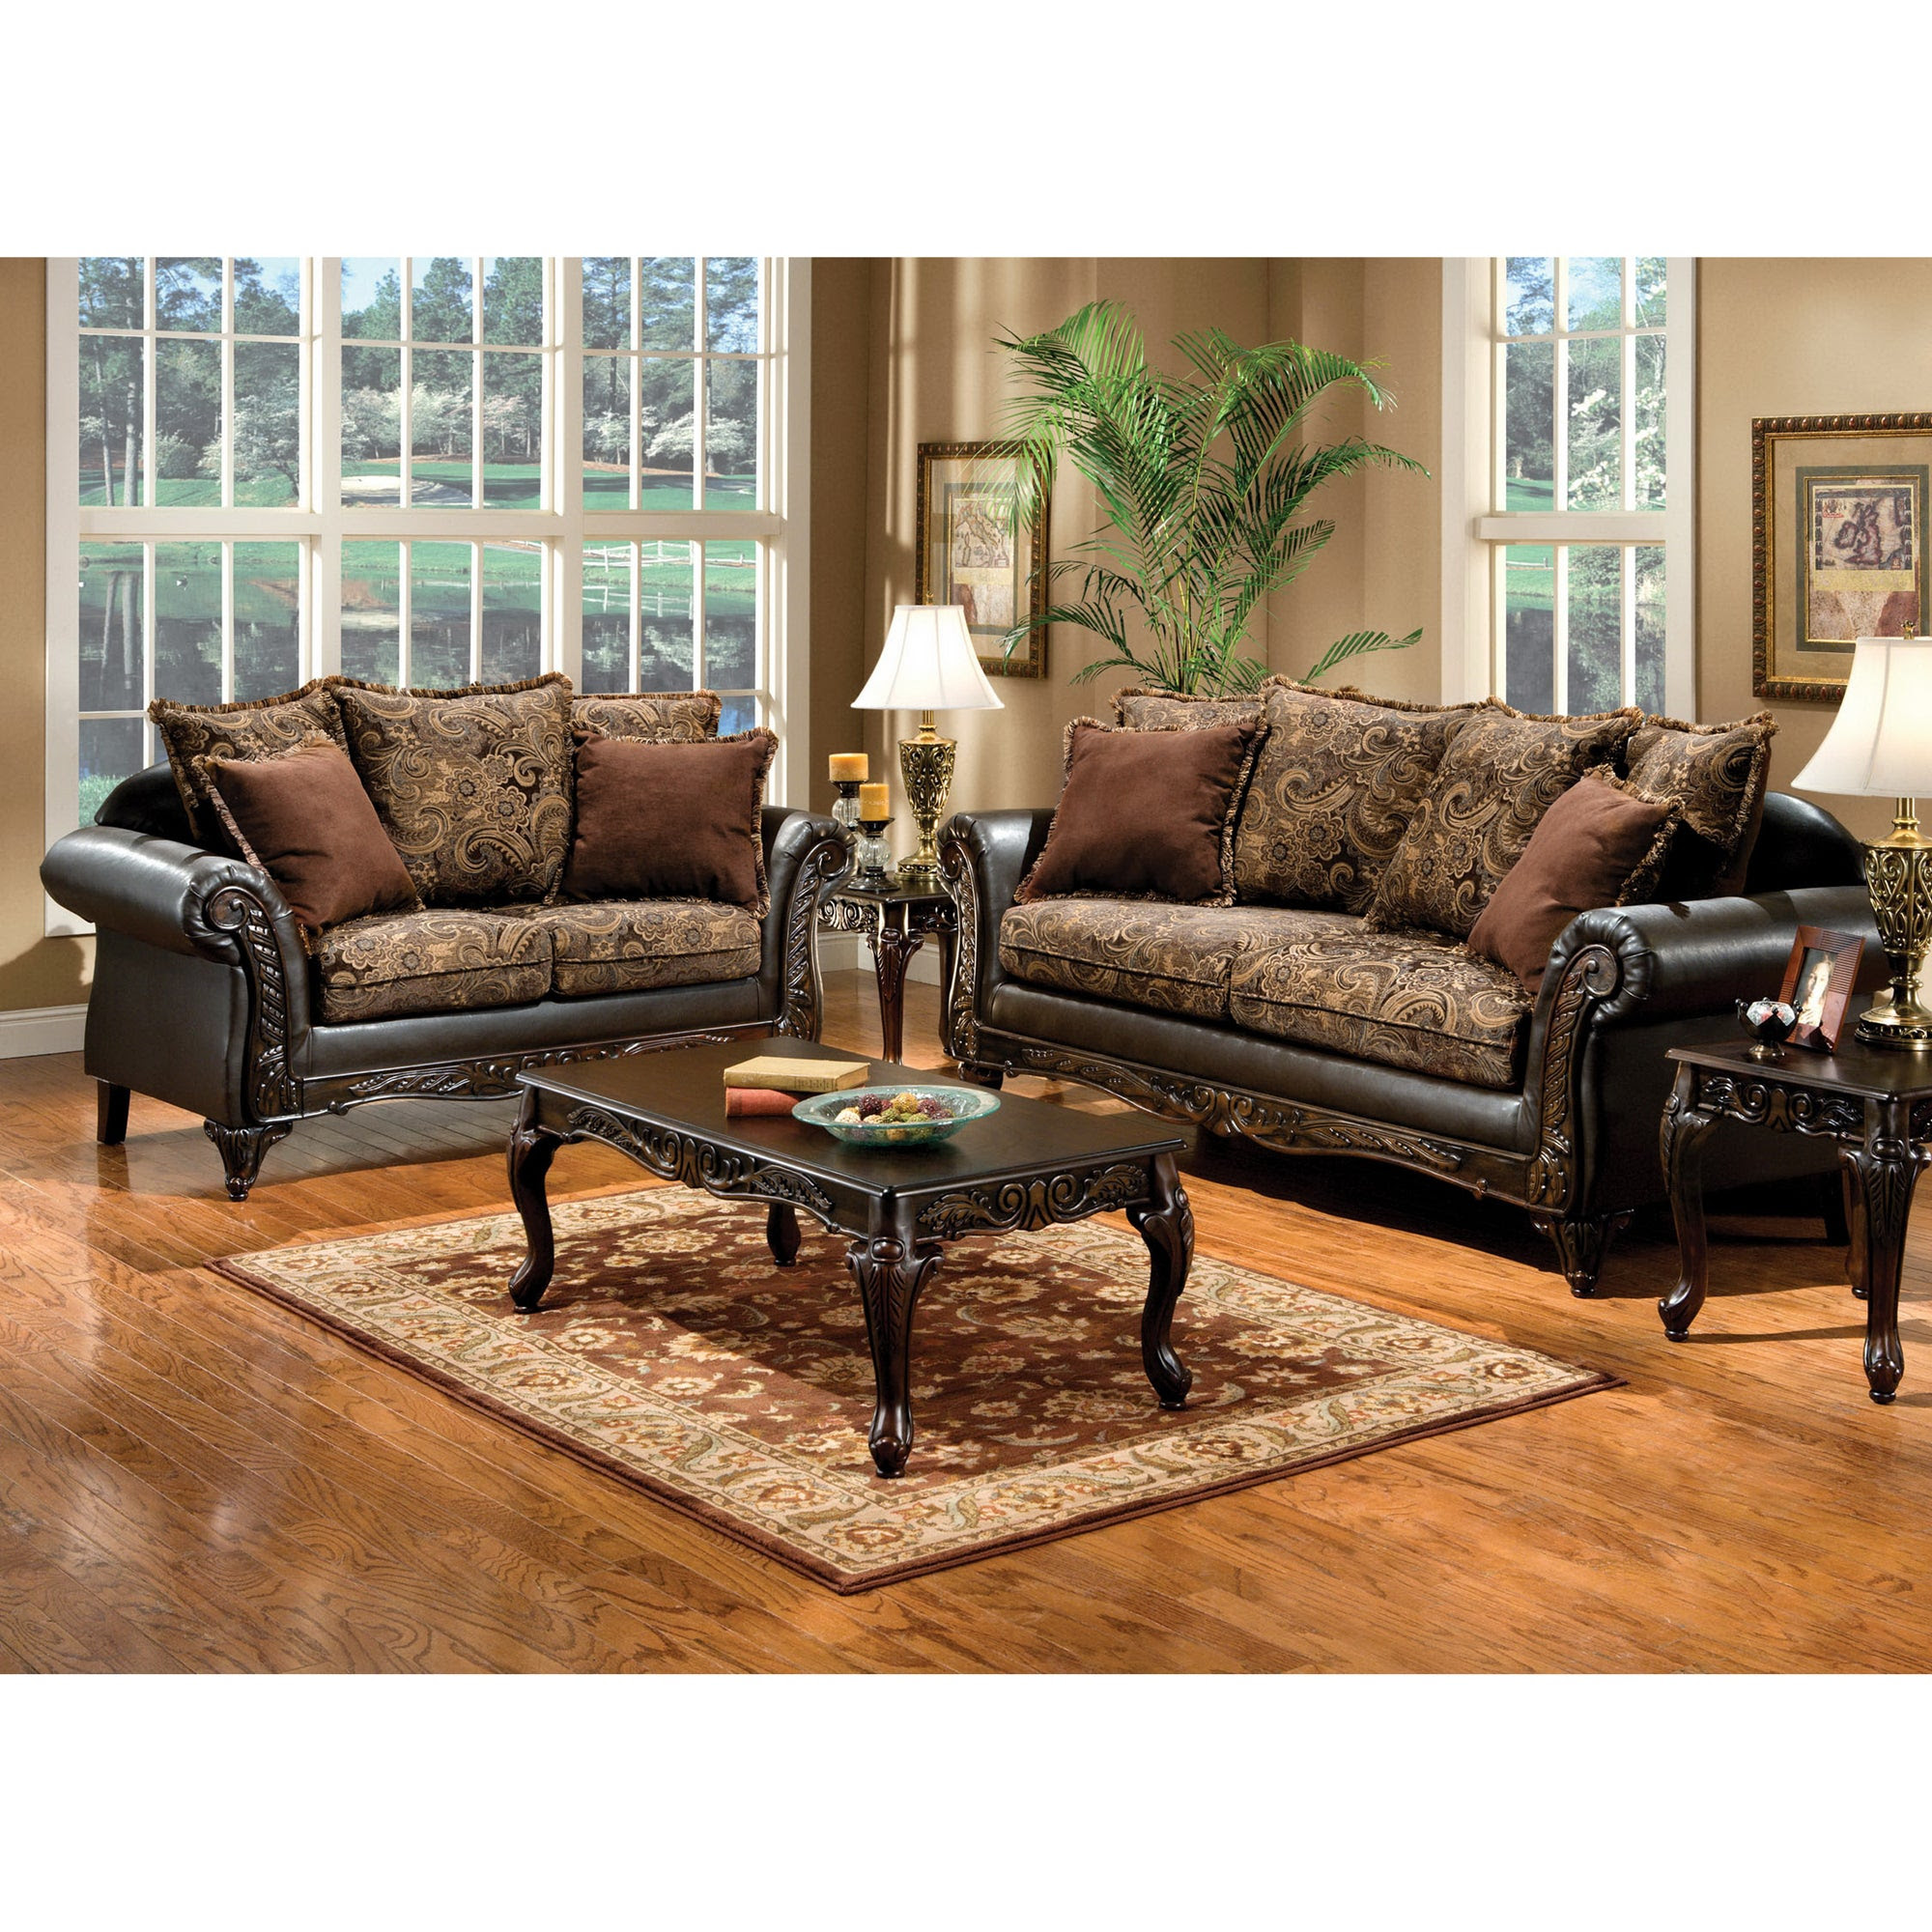 Furniture of America Ruthy Traditional Dark Brown Floral ...